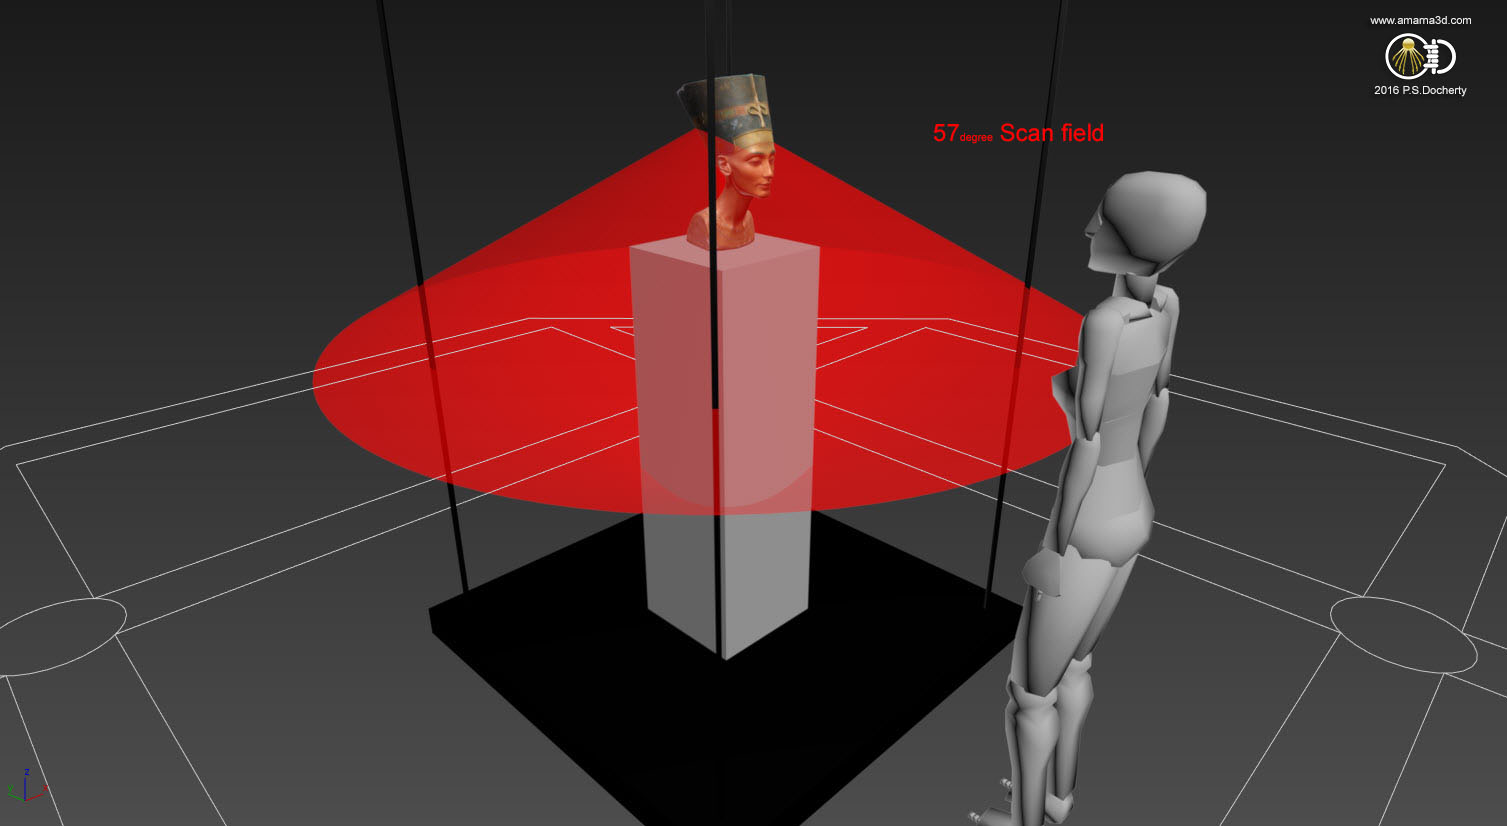 Nefertiti Hack - Questions regarding the 3D scan of the bust of